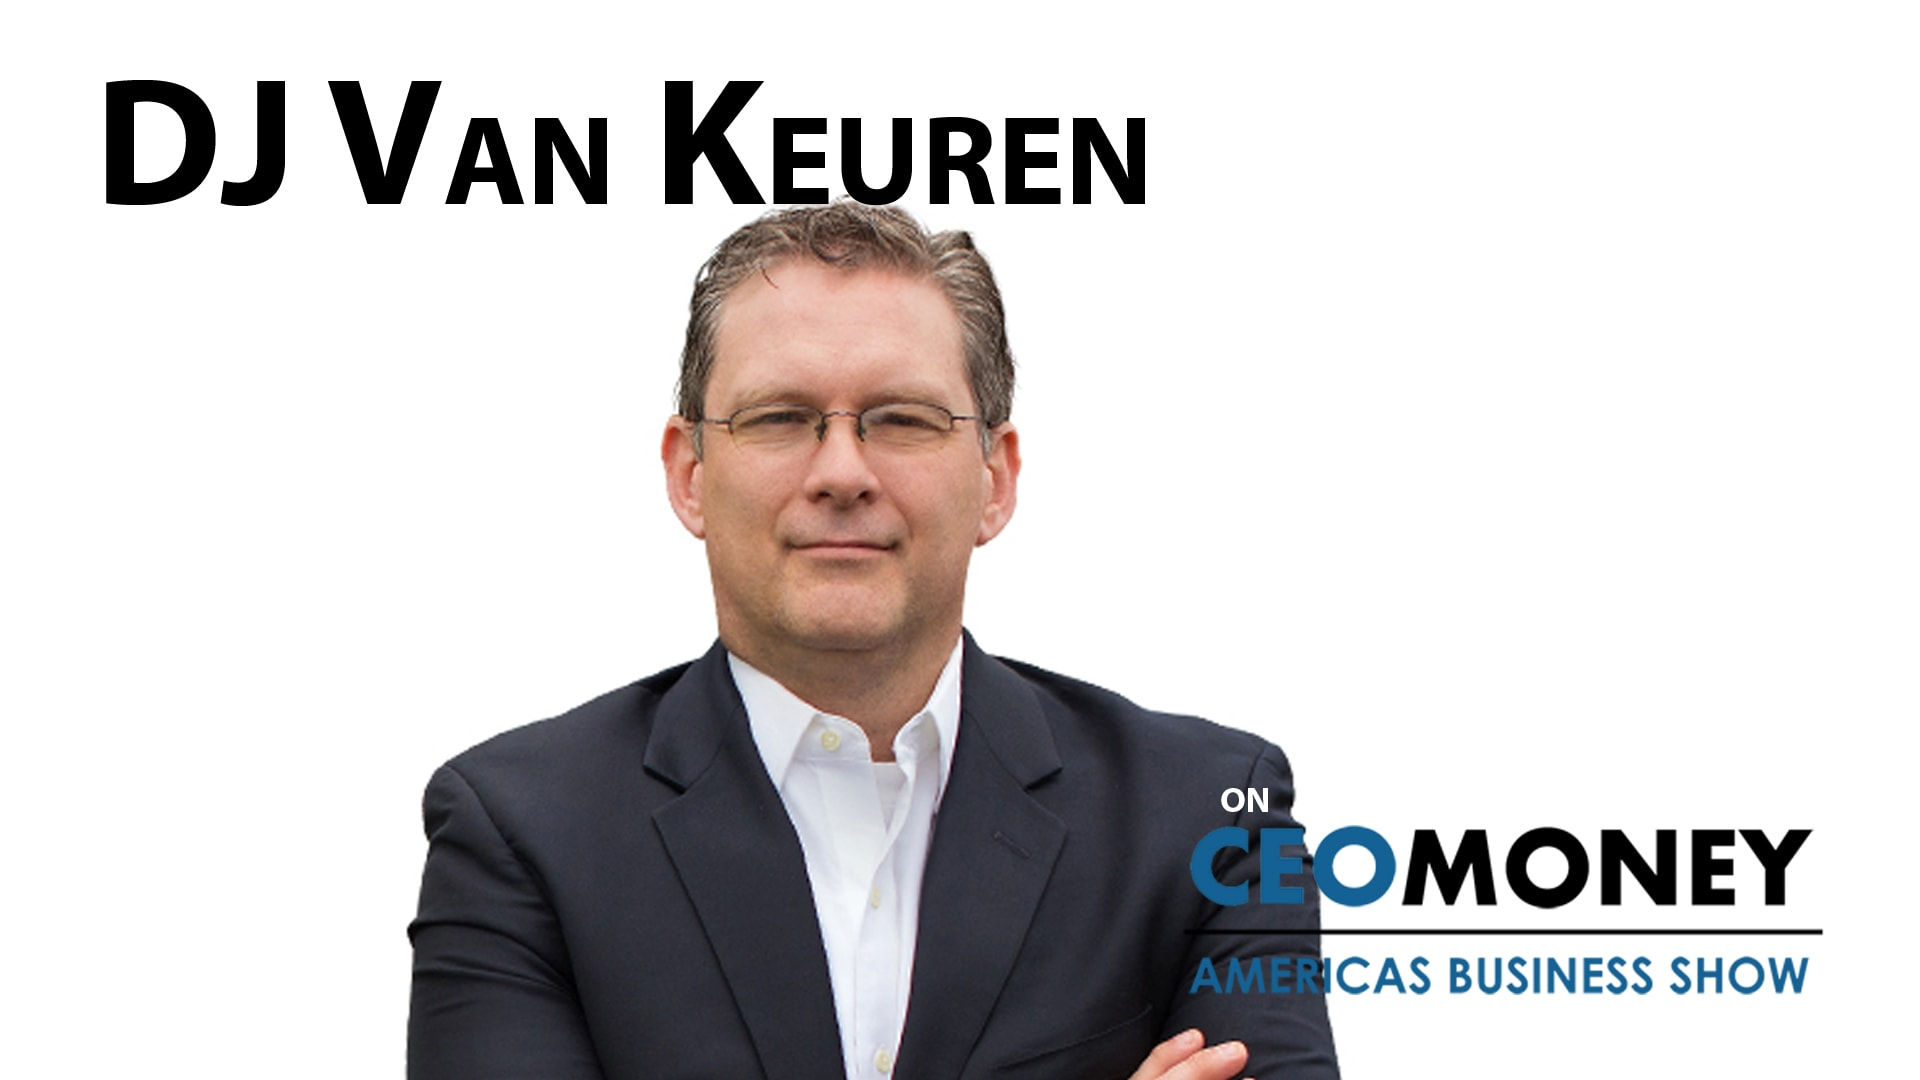 DJ Van Keuren is an industry expert promoting real estate investing to family offices